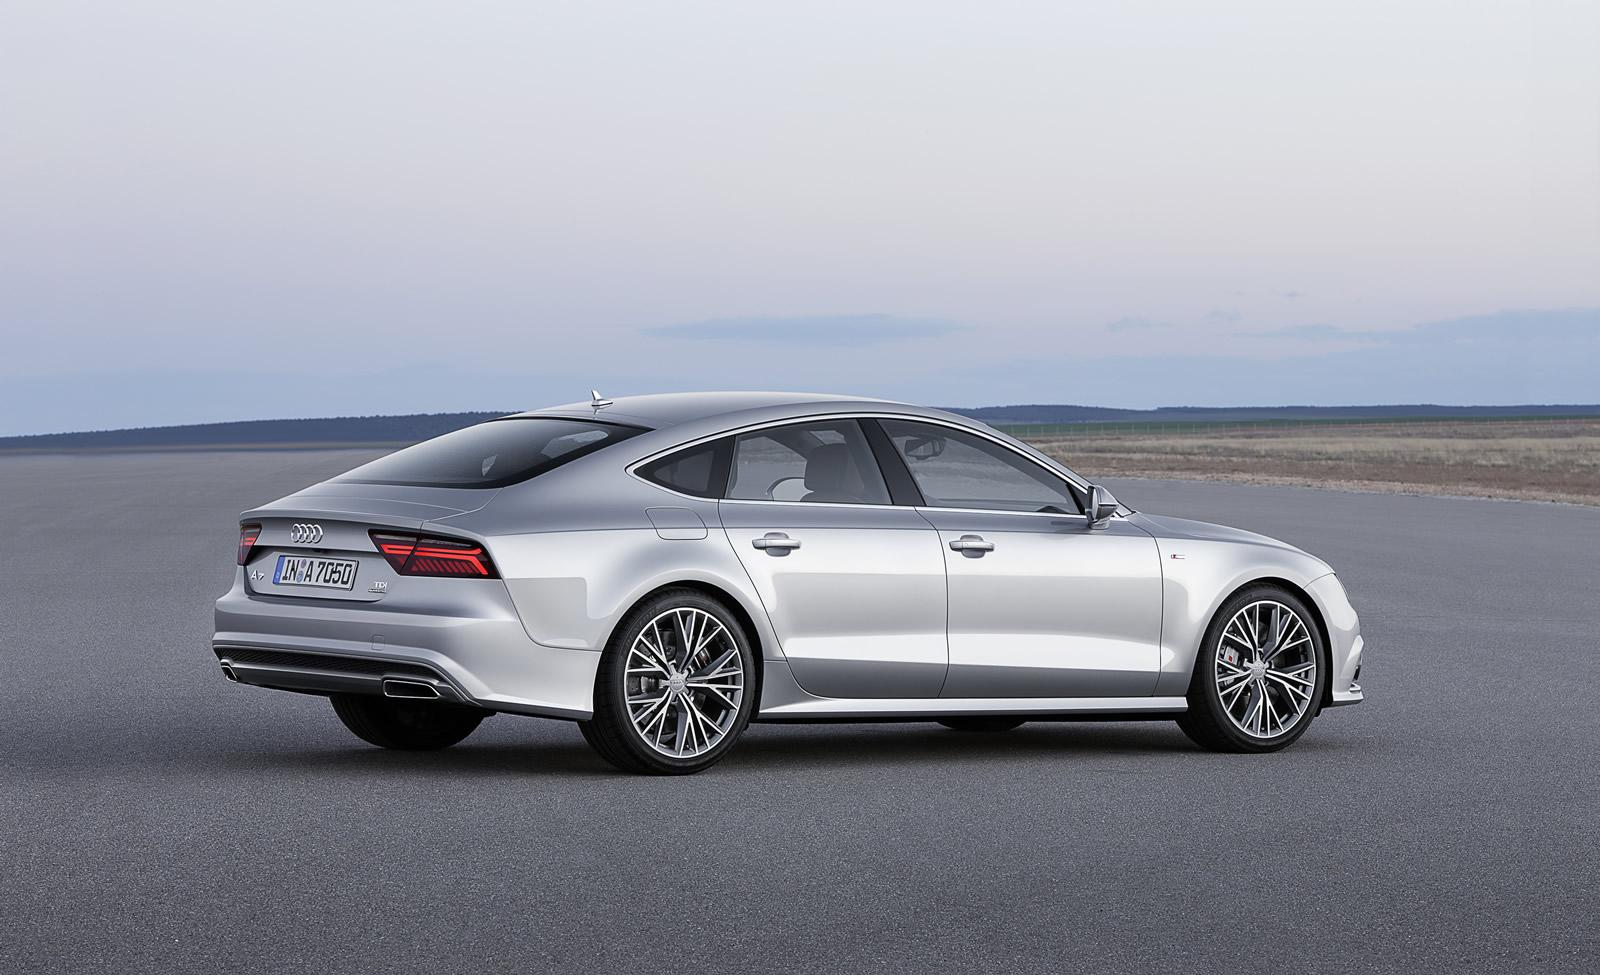 Audi A S Sportback Photos ModelPublishercom - 2 door audi a7